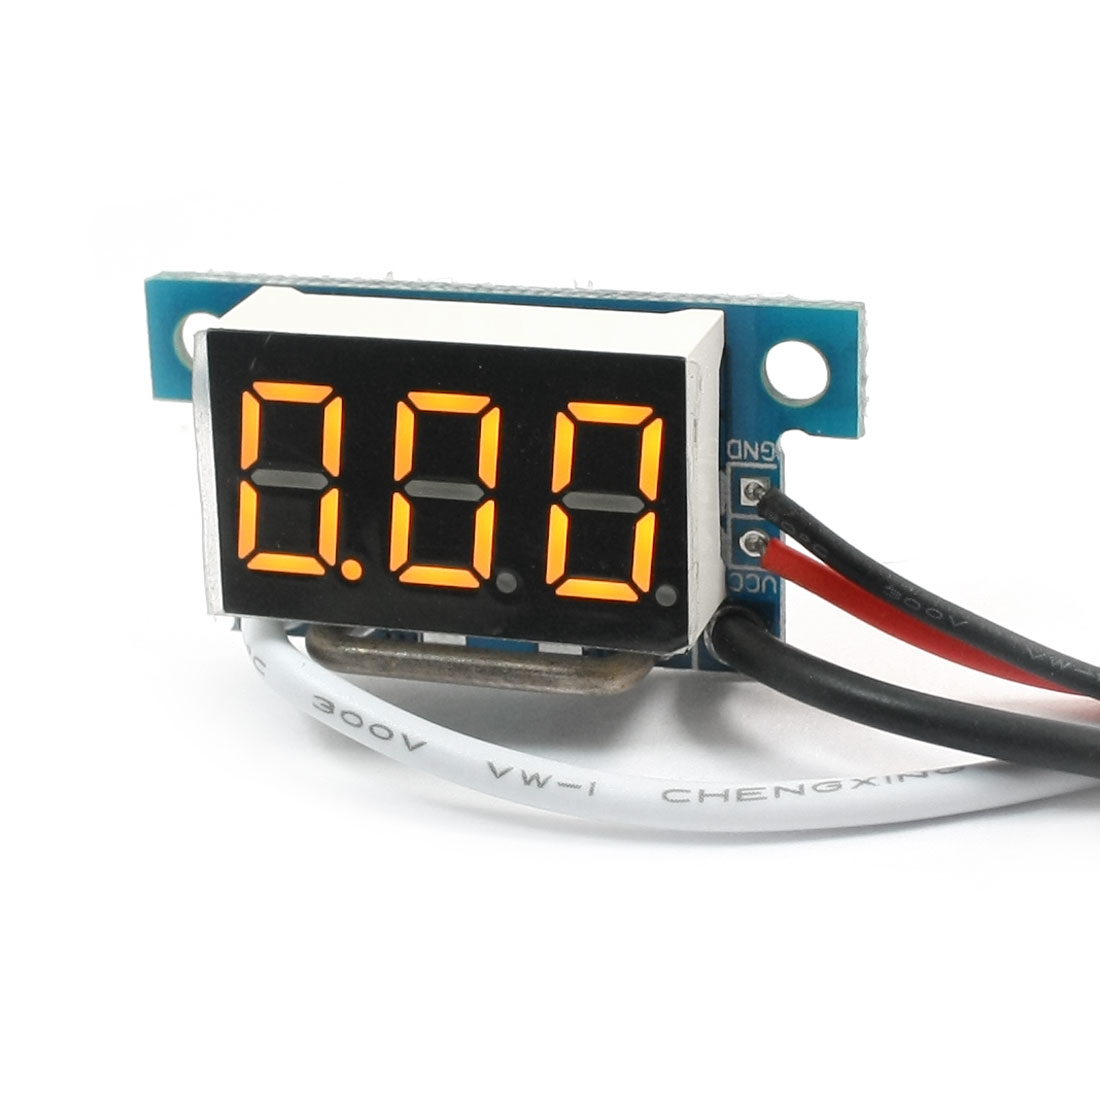 Digital DC 0-10A Yellow LCD Display Current Tester Gauge Panel Ammeter Meter